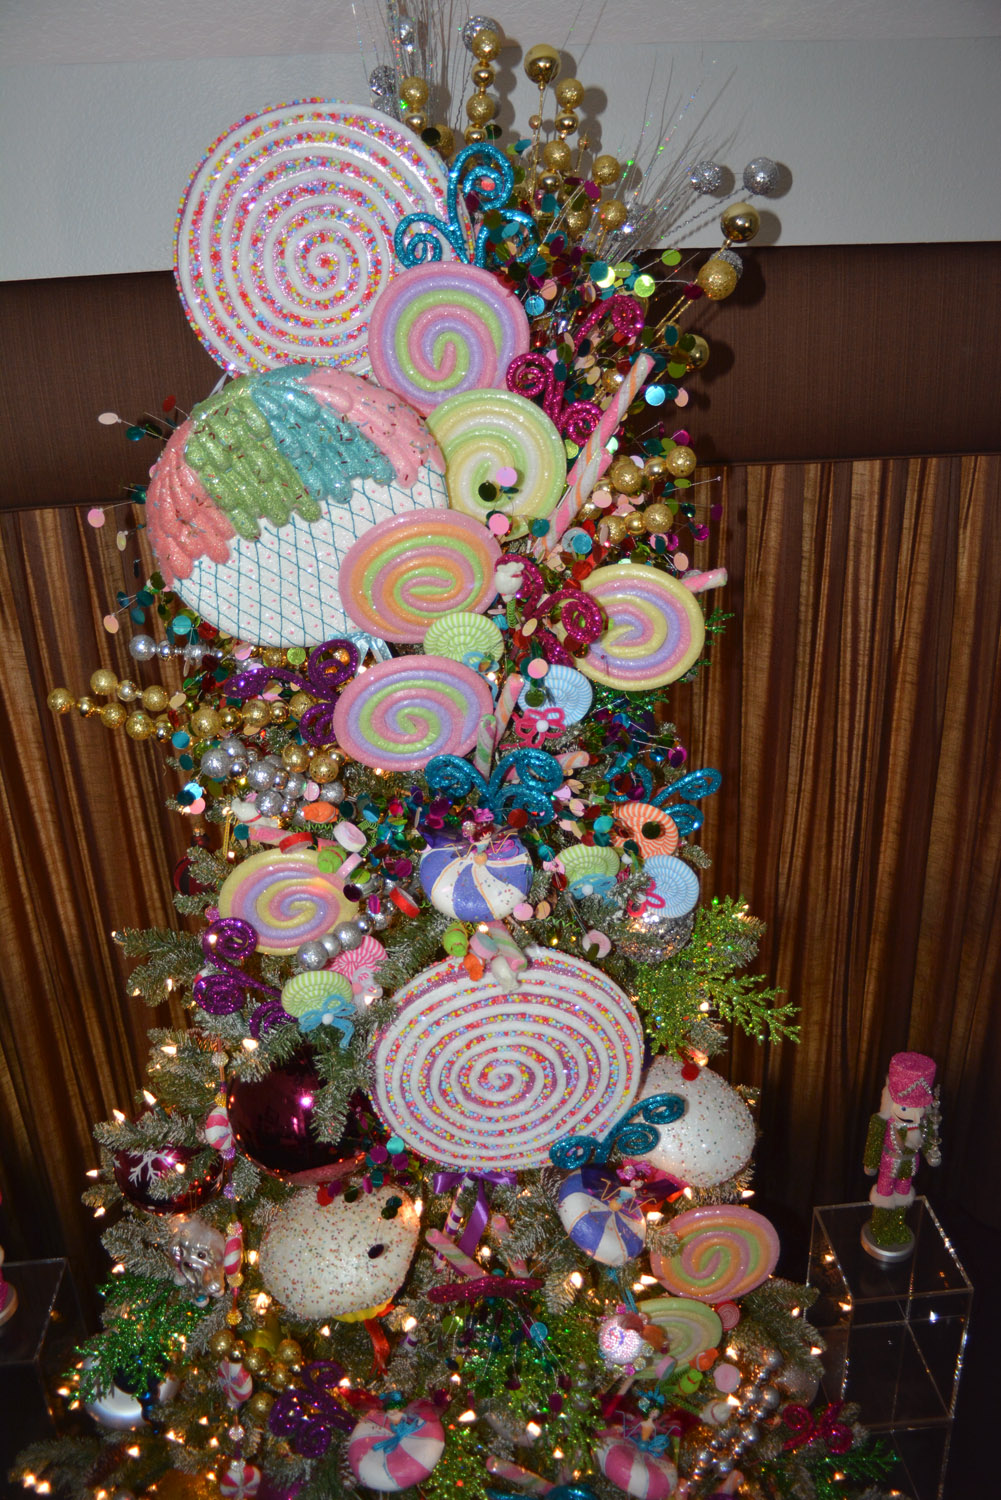 we used lots of bright colors gold and silver picks glitter swirls colorful balls and giant lollipop ornaments to made this christmas tree come to life